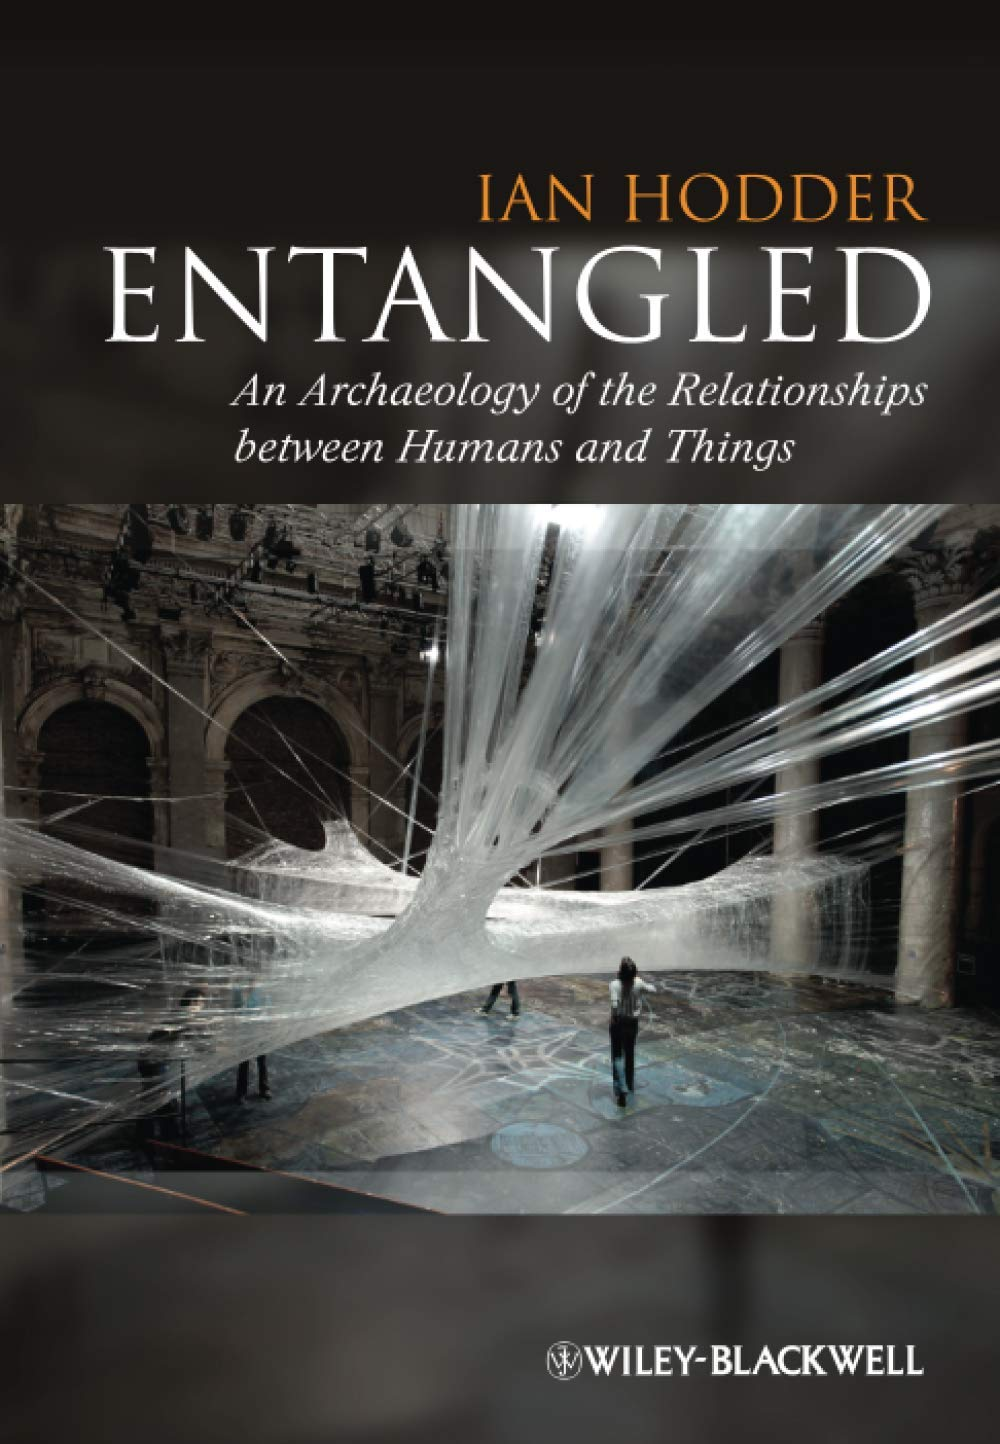 Image OfEntangled: An Archaeology Of The Relationshipsbetween Humans And Things